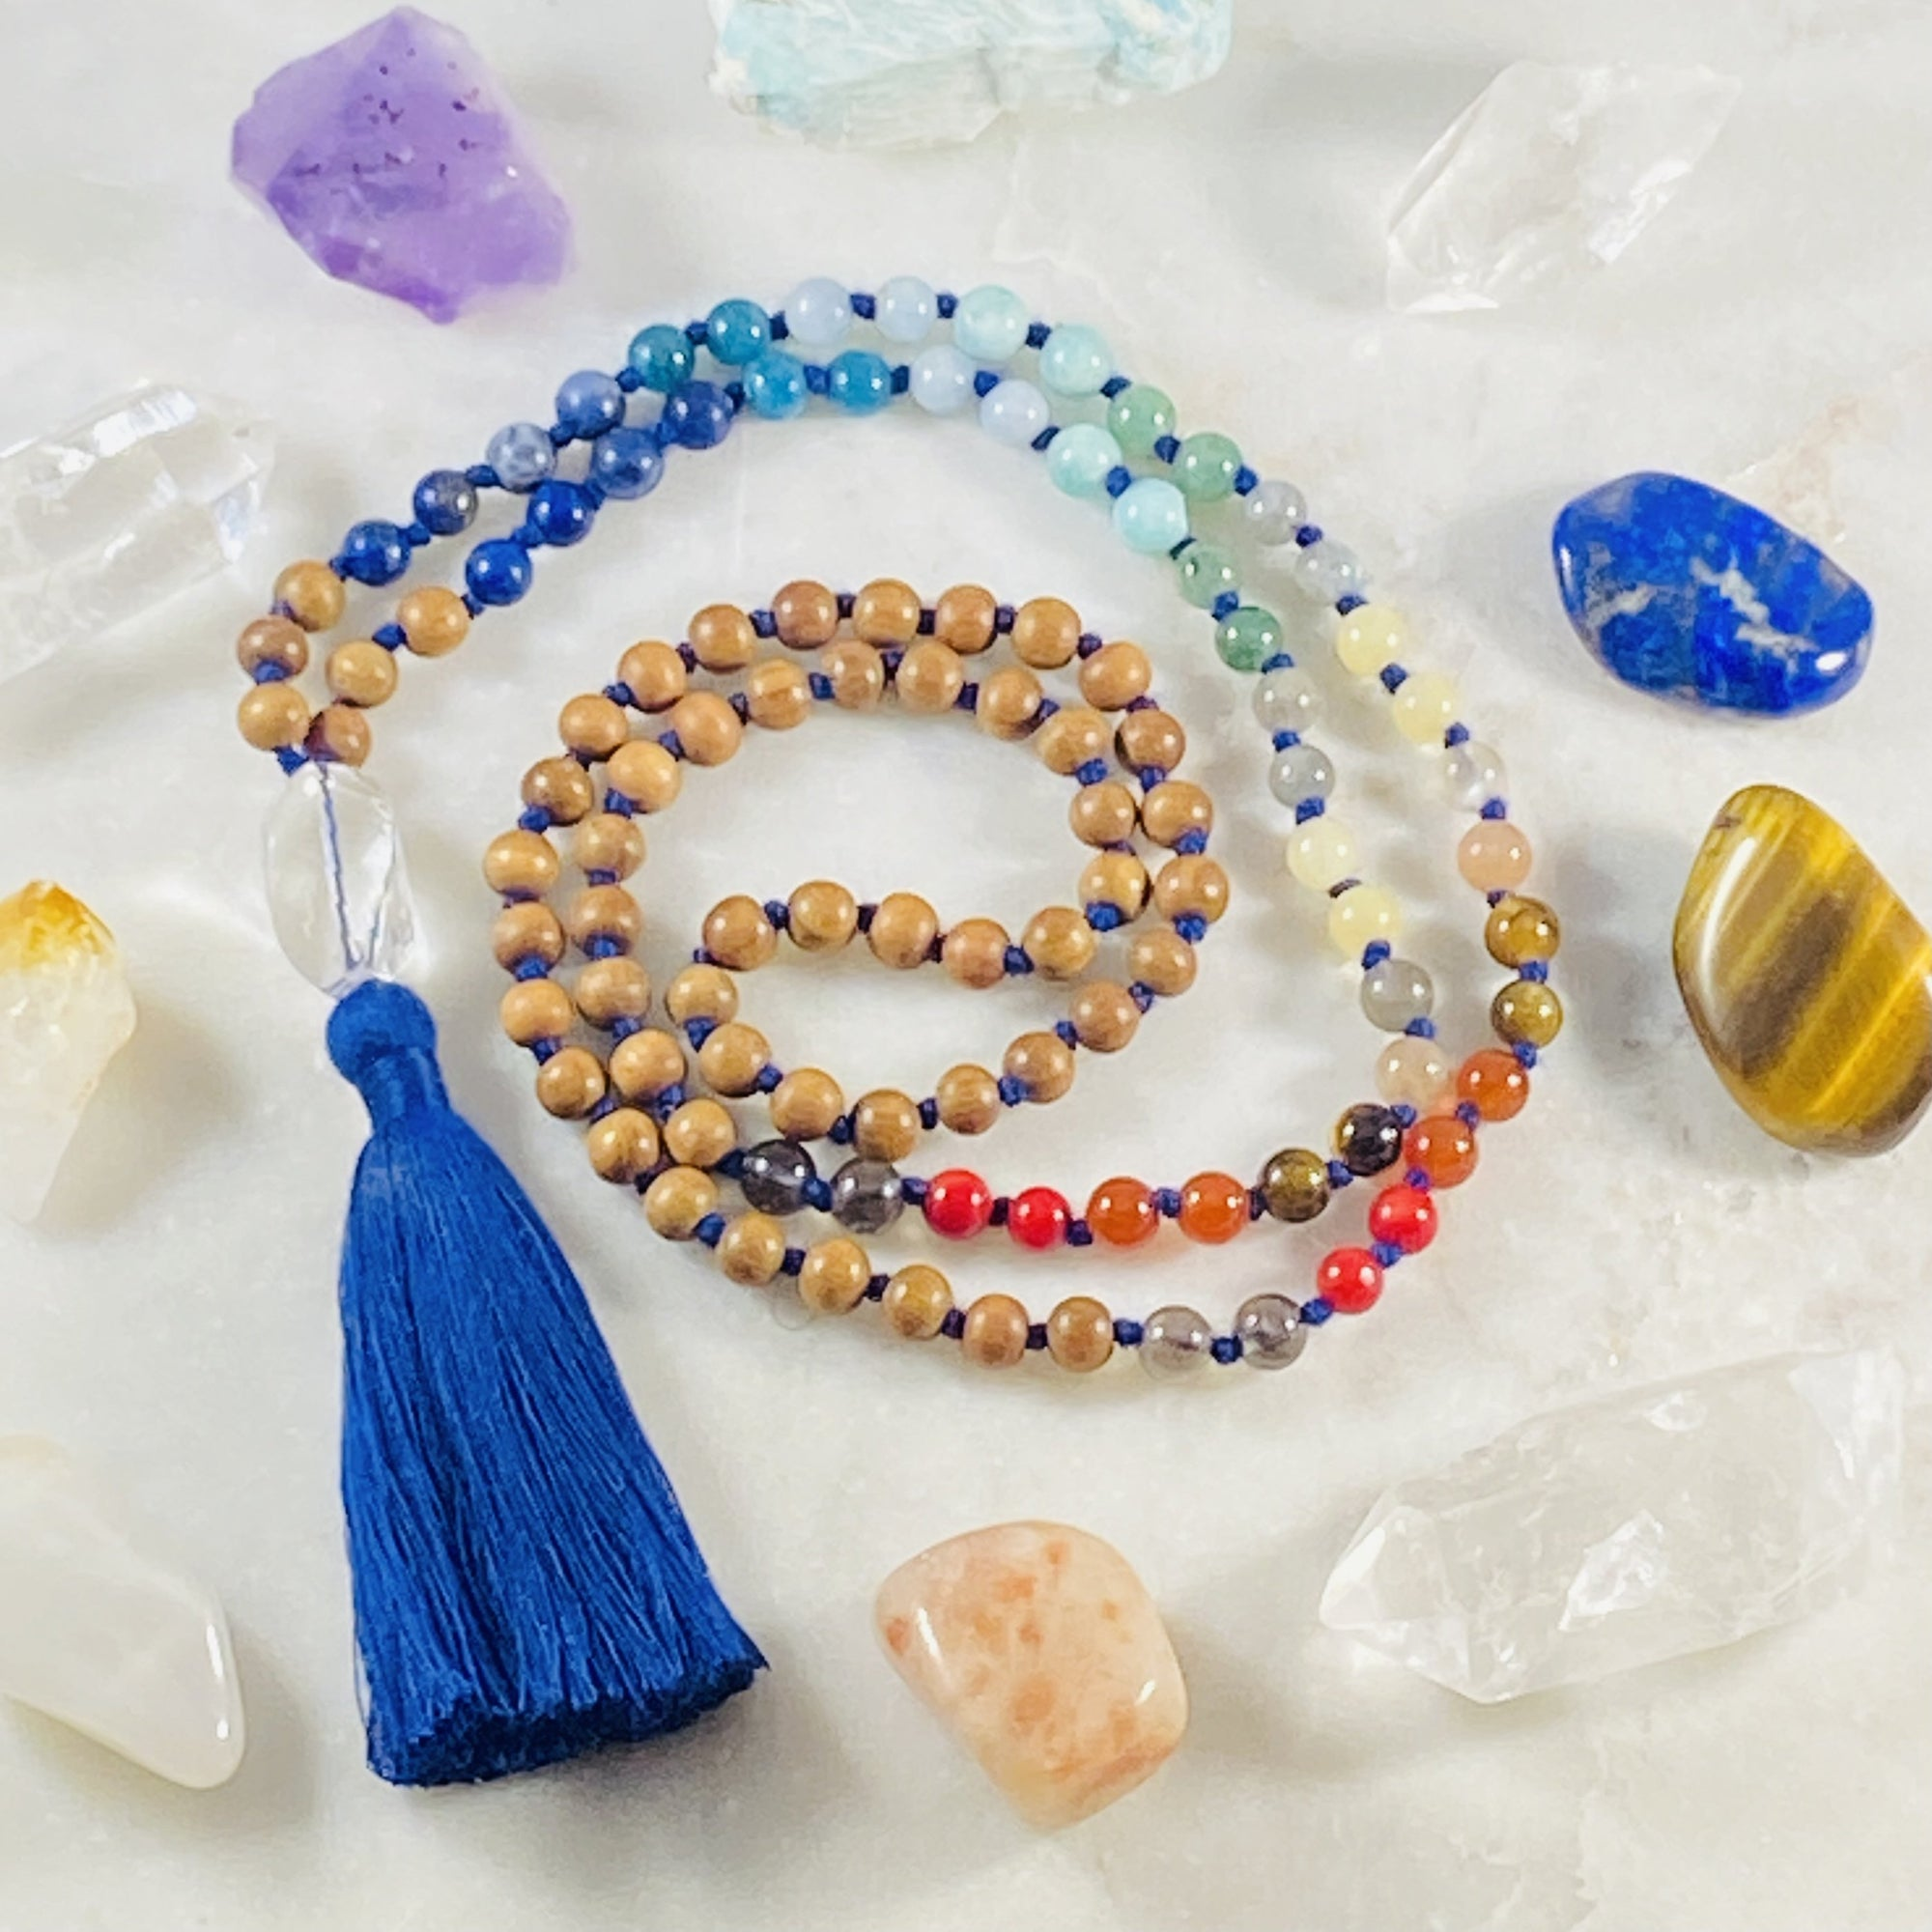 Chakra mala for balance and meditation by Sarah Belle